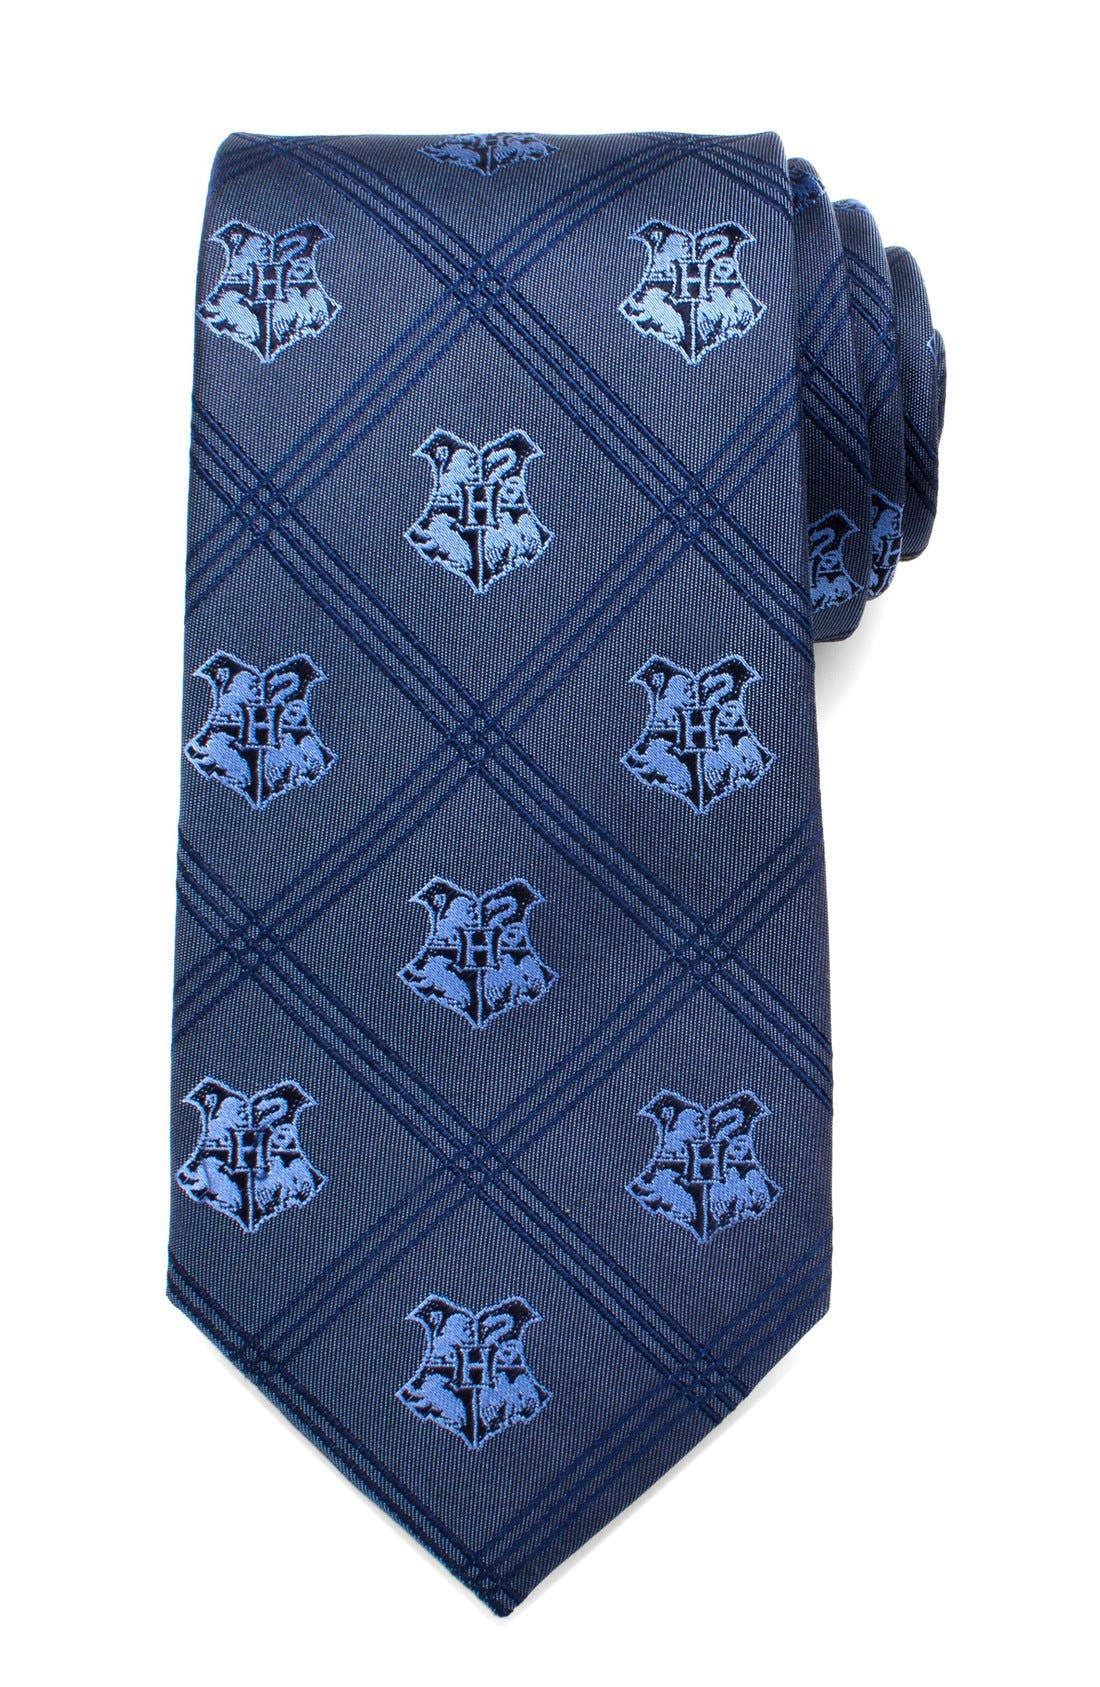 'Hogwarts' Silk Tie,                         Main,                         color, Blue